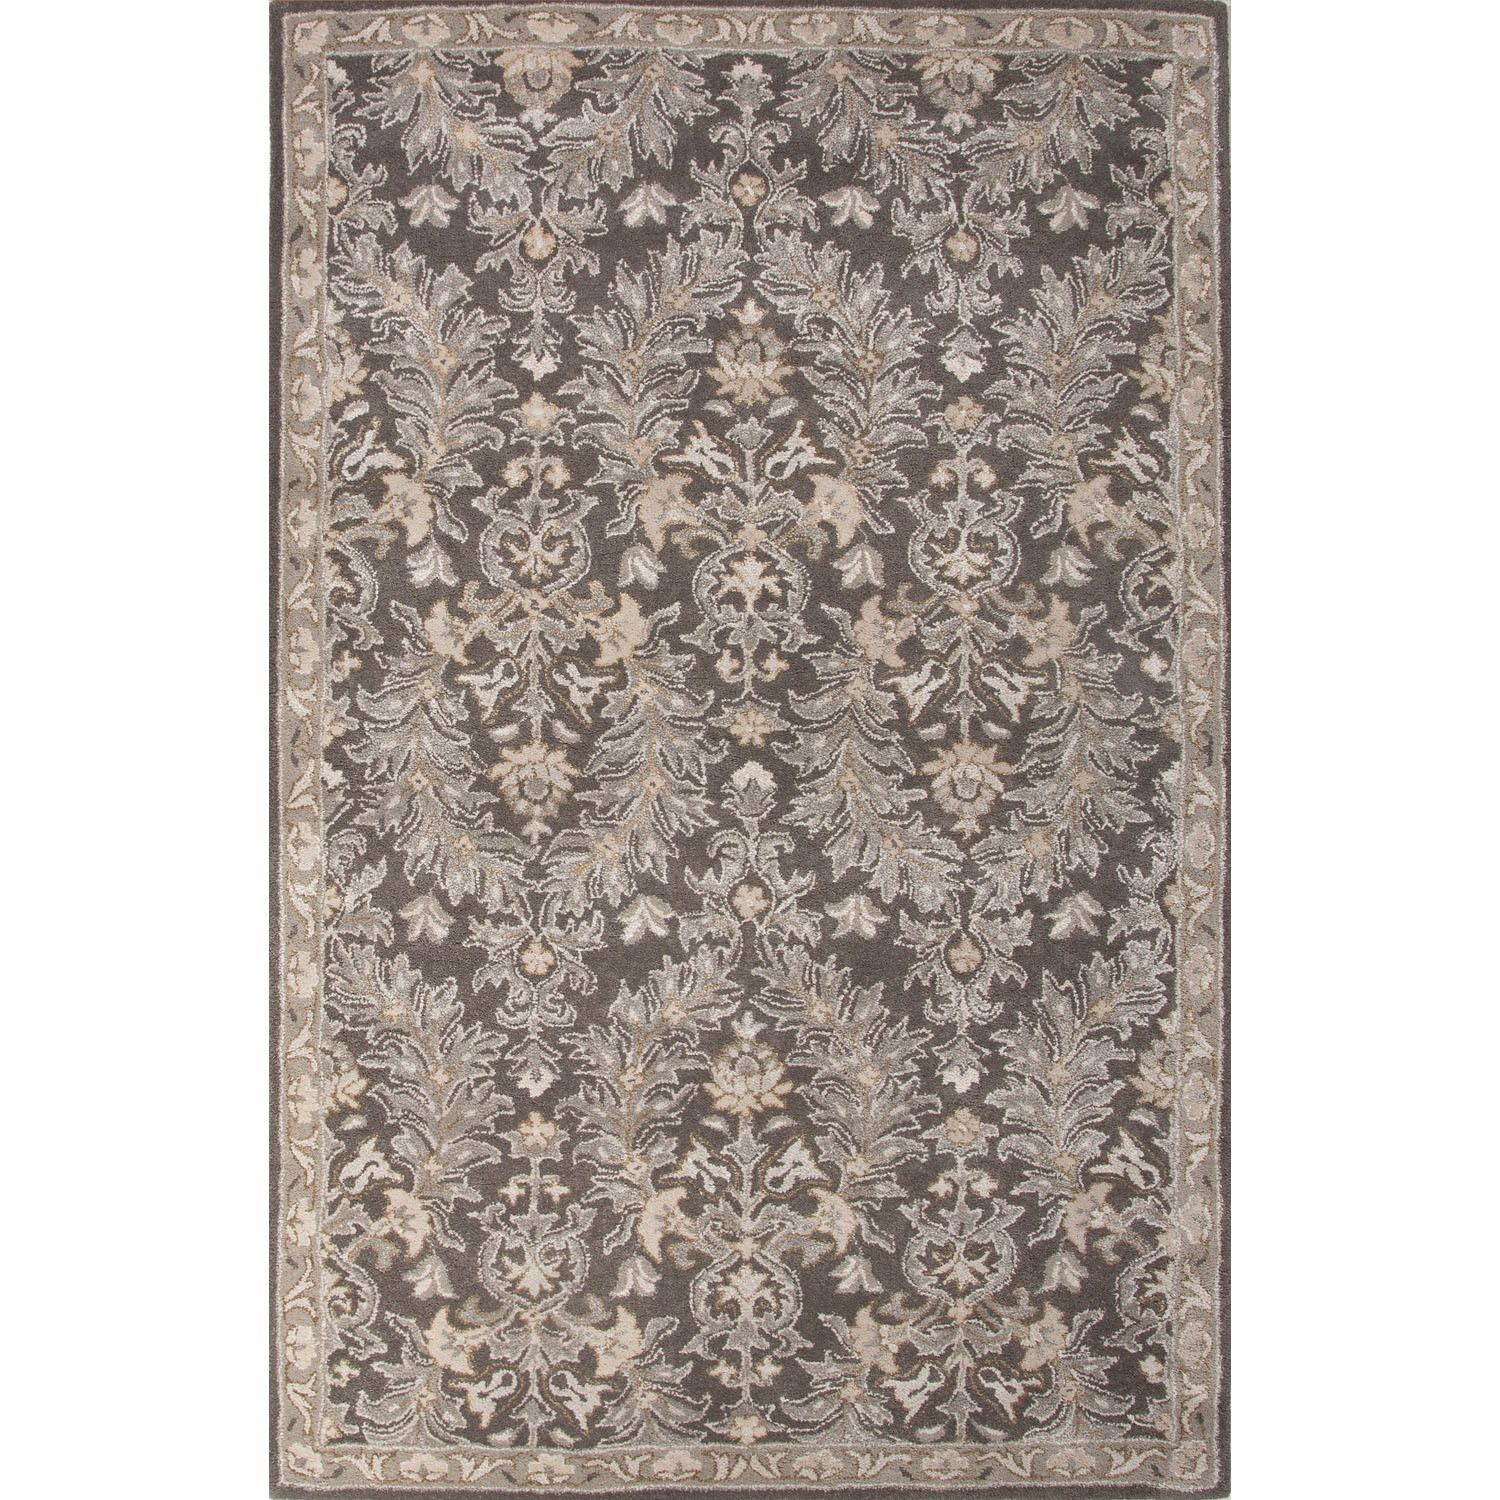 Jaipur Clic Oriental Pattern Brown Ivory Wool And Art Silk Area Rug 5